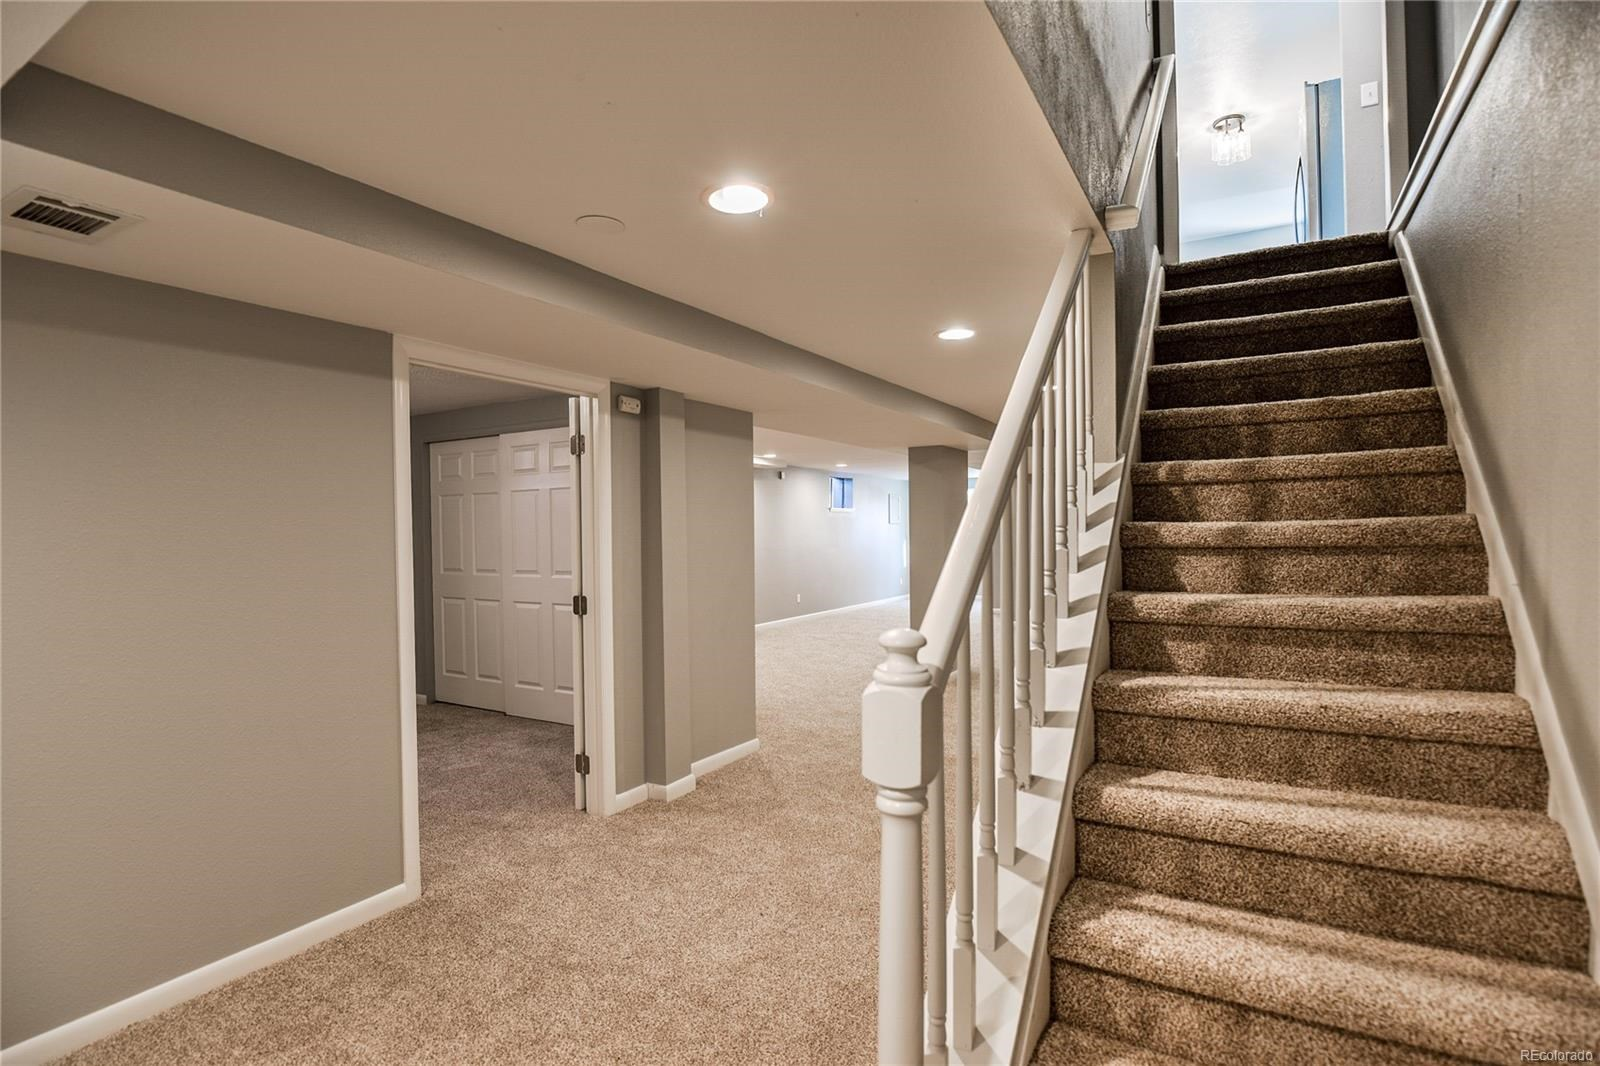 MLS# 8183776 - 15 - 2547 W 104th Circle, Westminster, CO 80234